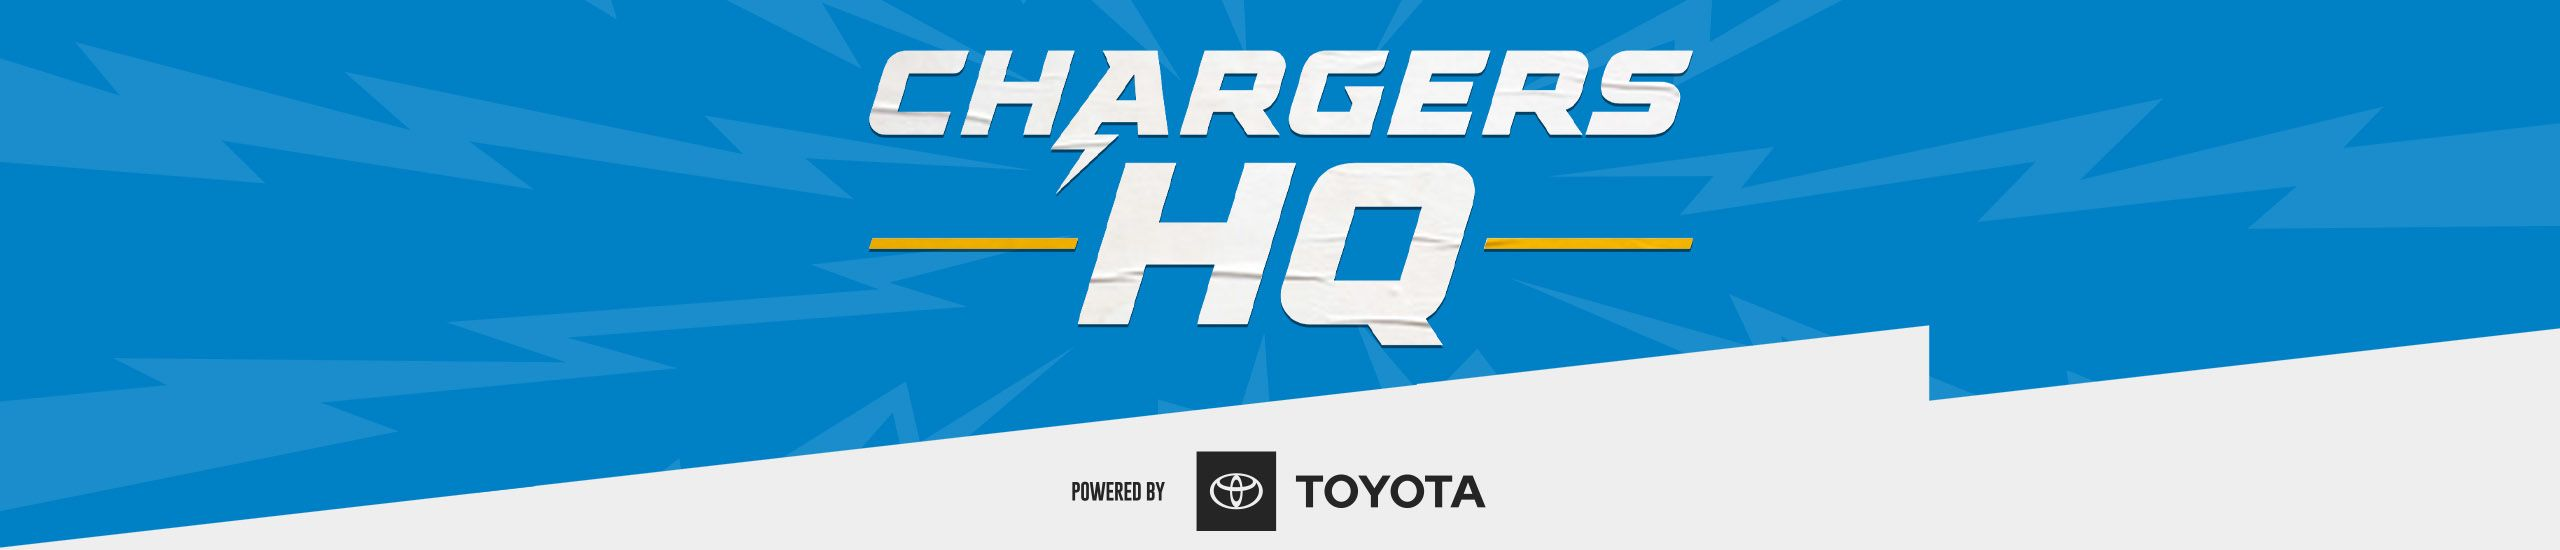 200910_Site_Chargers_HQ_Header